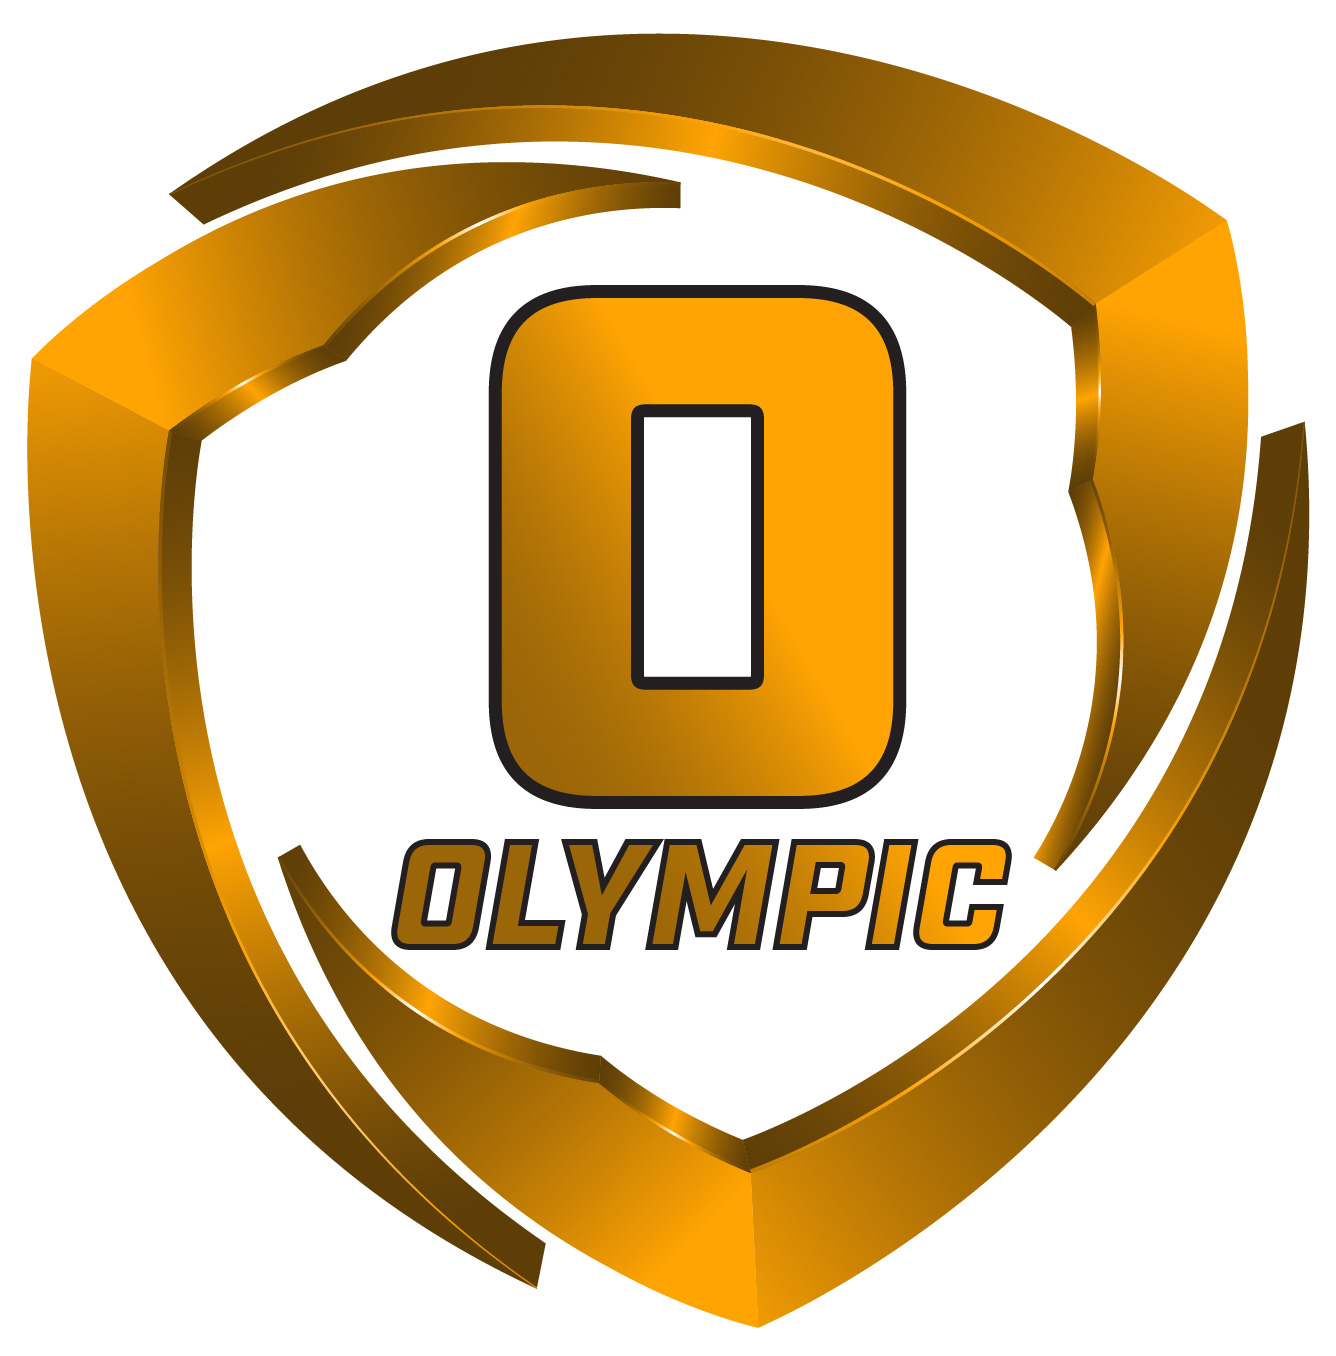 Olympic Image